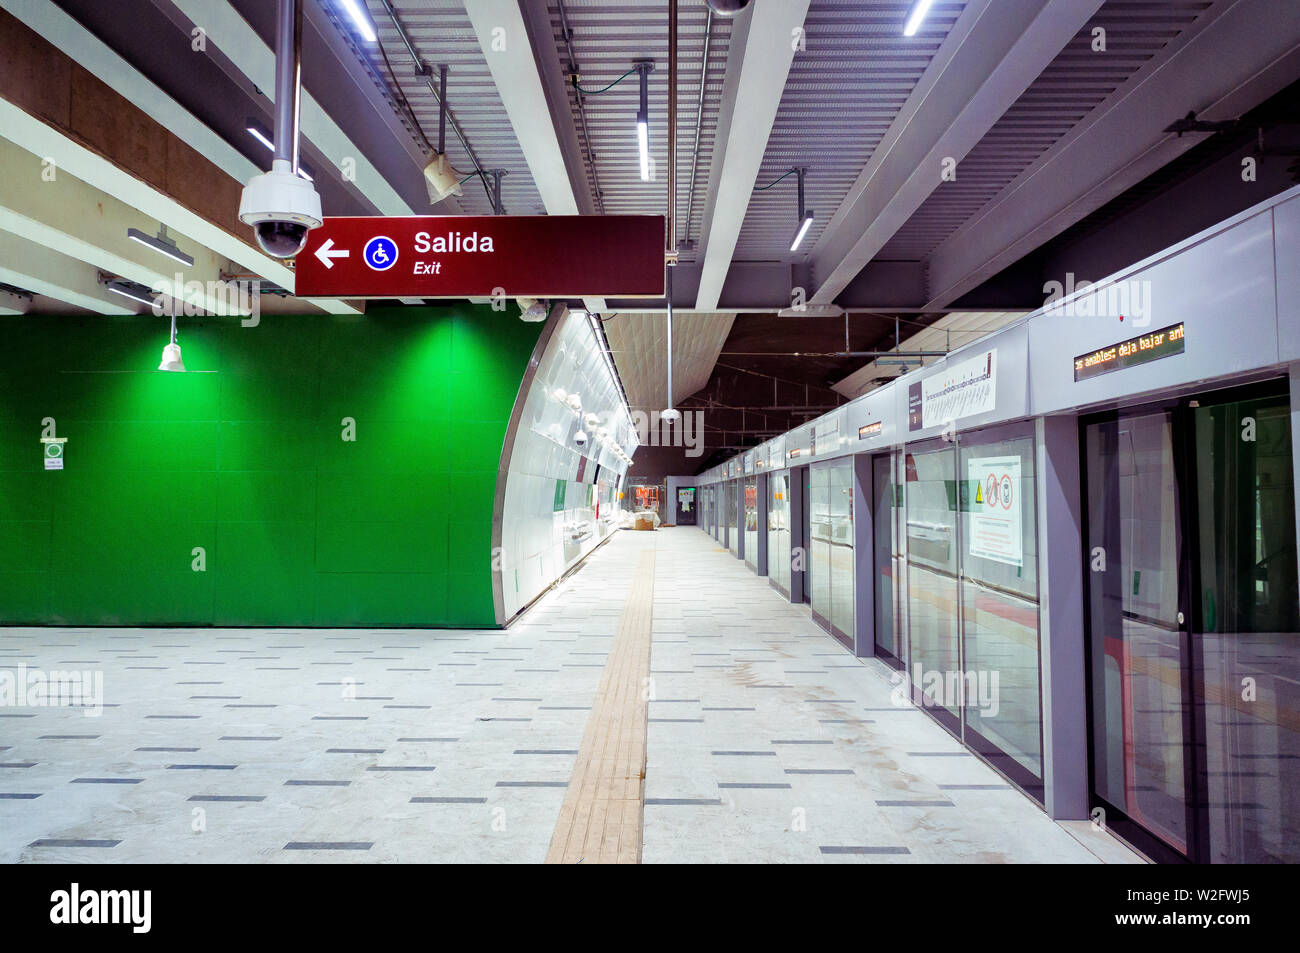 SANTIAGO, CHILE - DECEMBER 2018: A view of the Fernando Castillo Velasco station of L3 before its inauguration - Stock Image